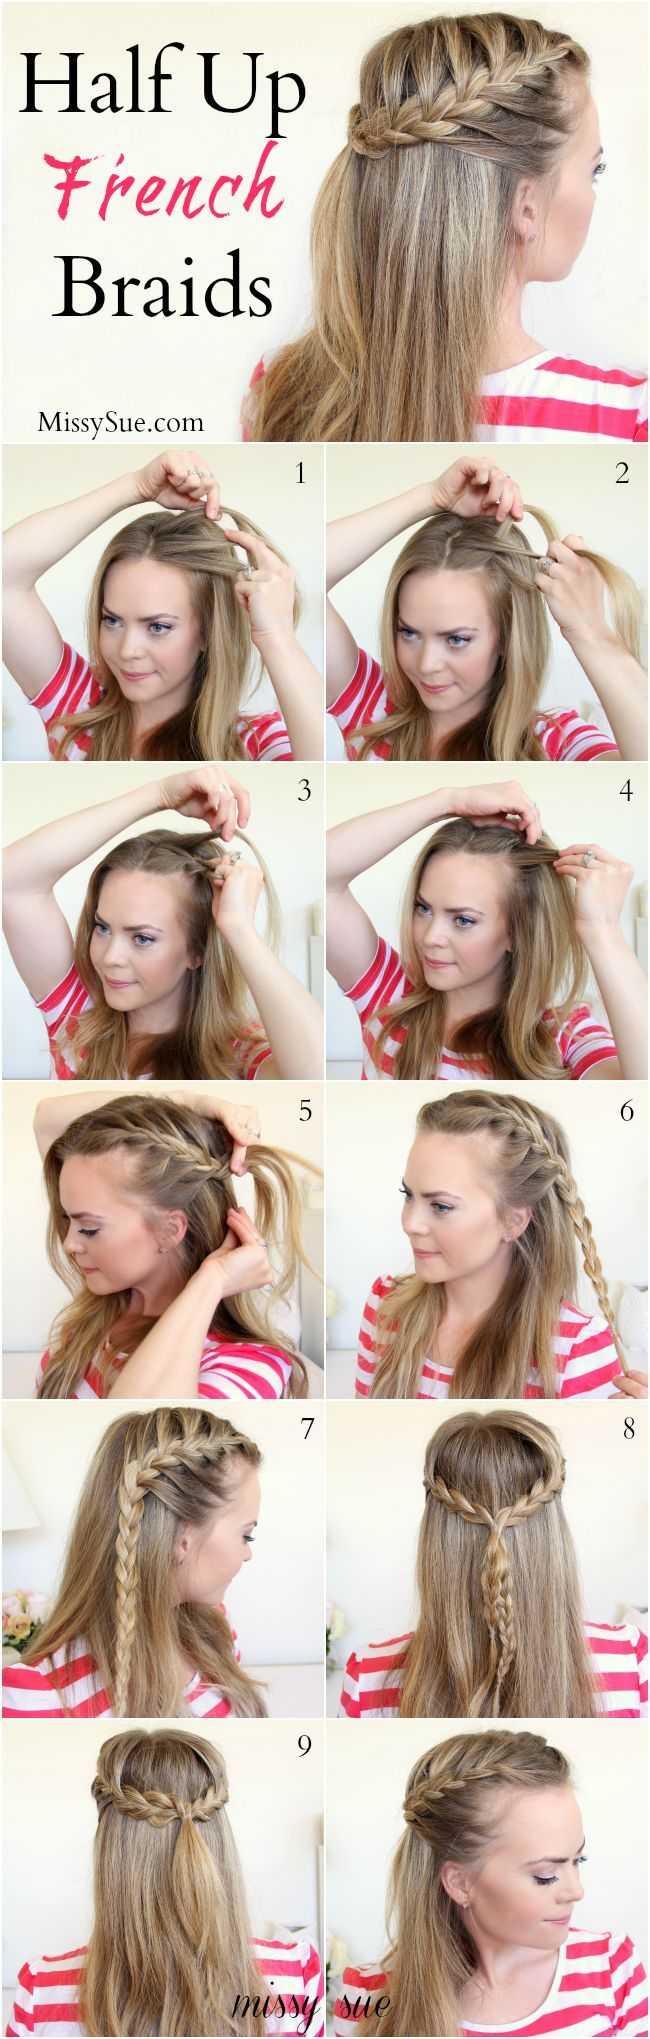 25+ Best Ideas About French Braiding Hair On Pinterest  Braids For Kids  Tutorial, Easy Kid Hairstyles And Braids For Kids